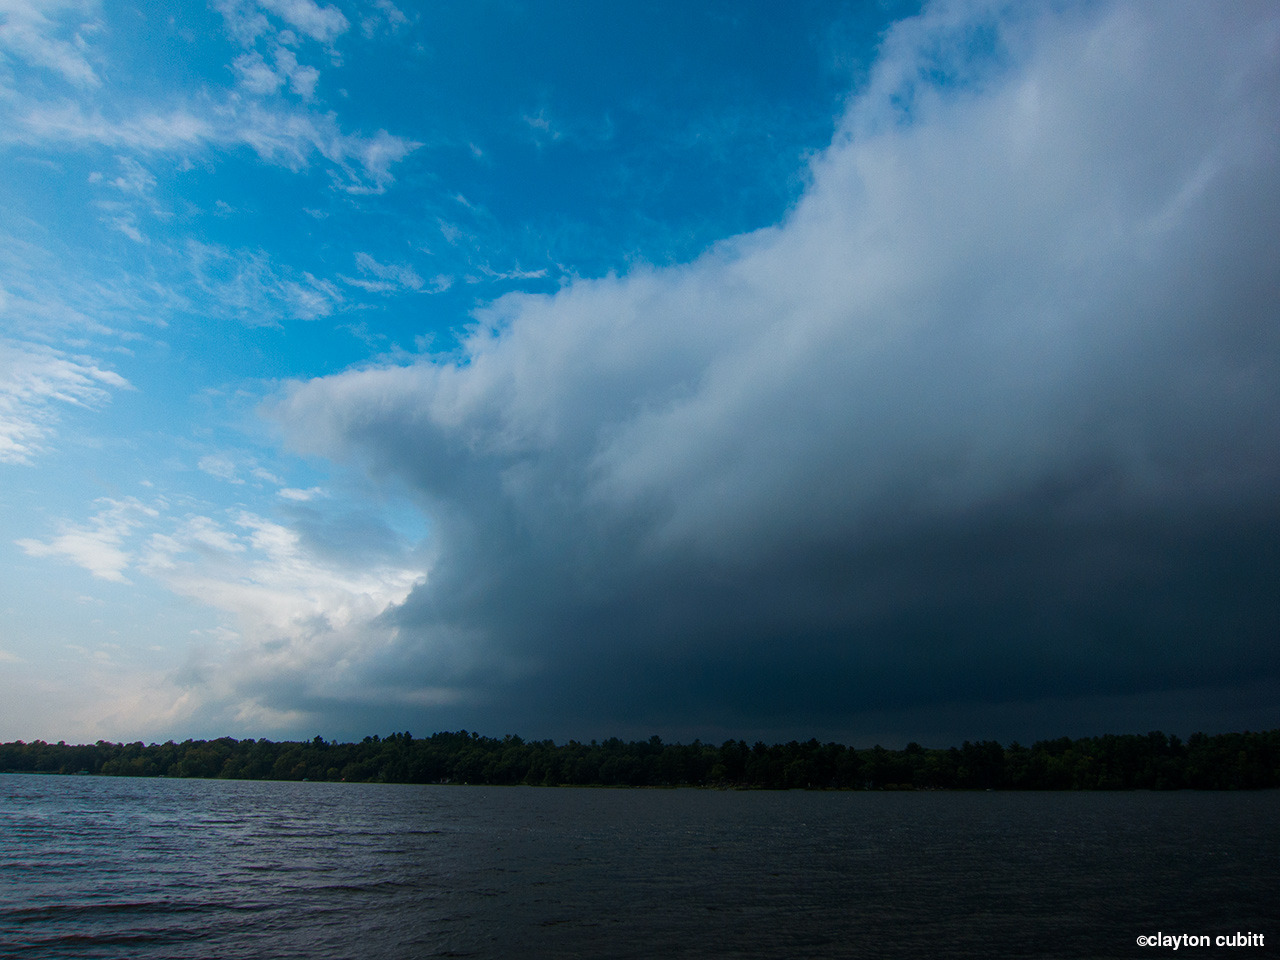 Rain clouds passing the lake, Minnesota   (2990)